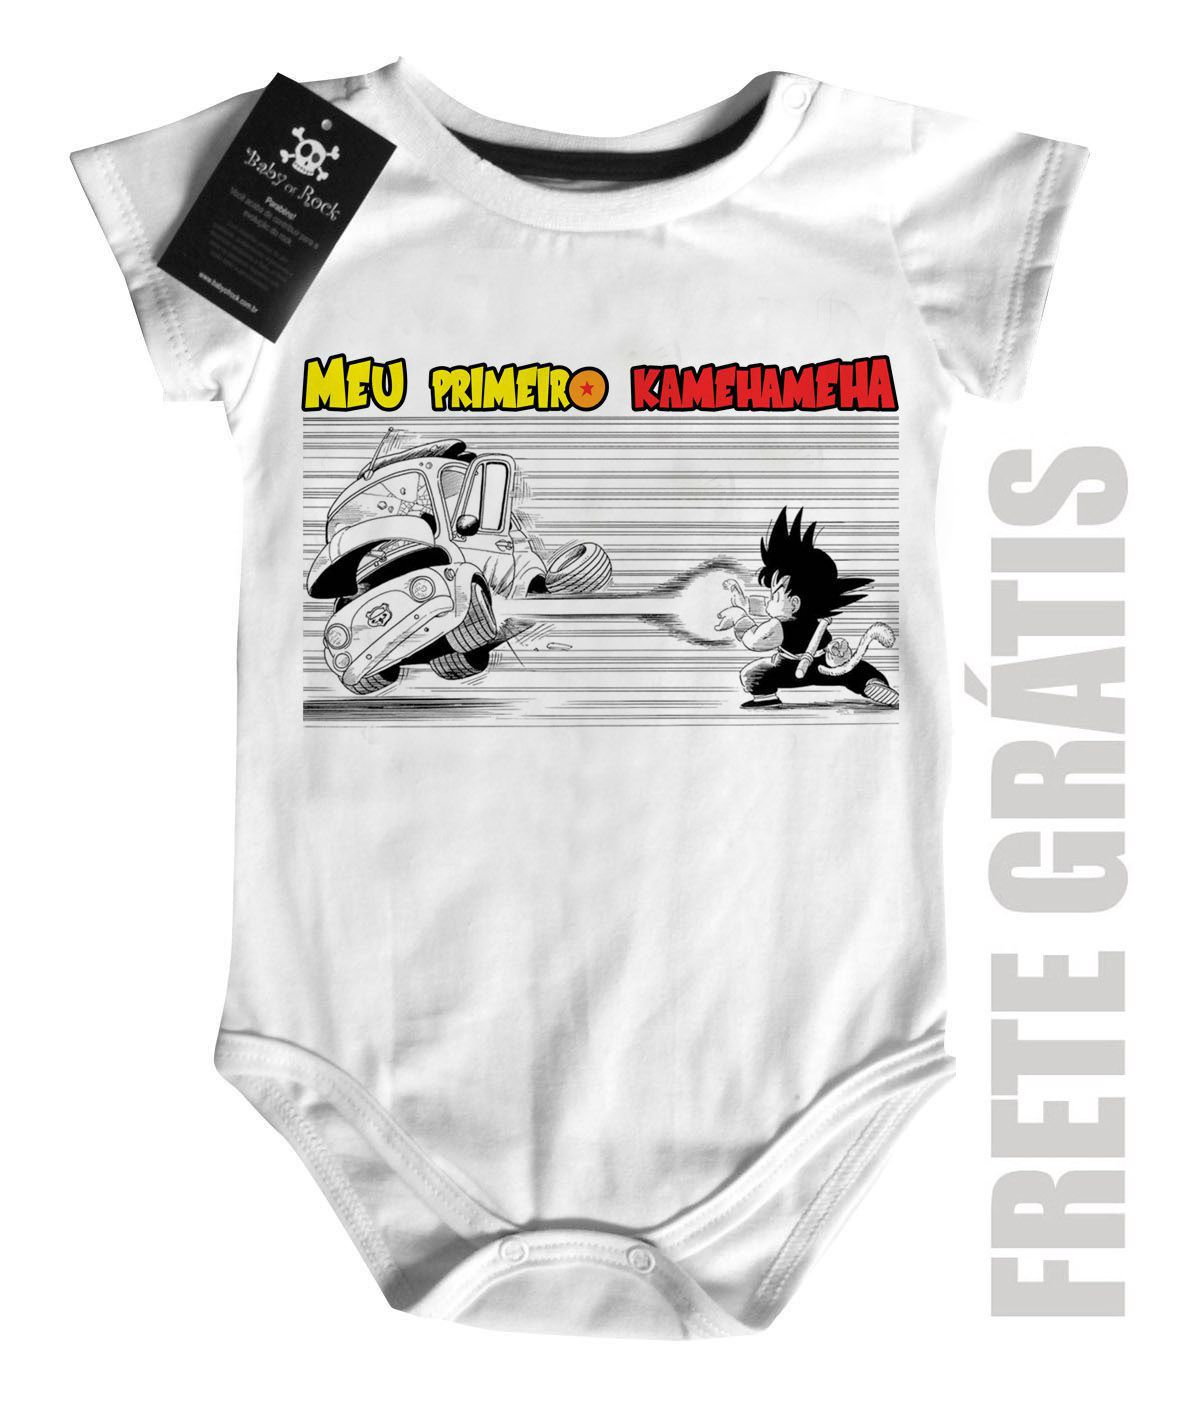 Body  Dragon Ball - Primeiro Kamehameha - White  - Baby Monster S/A